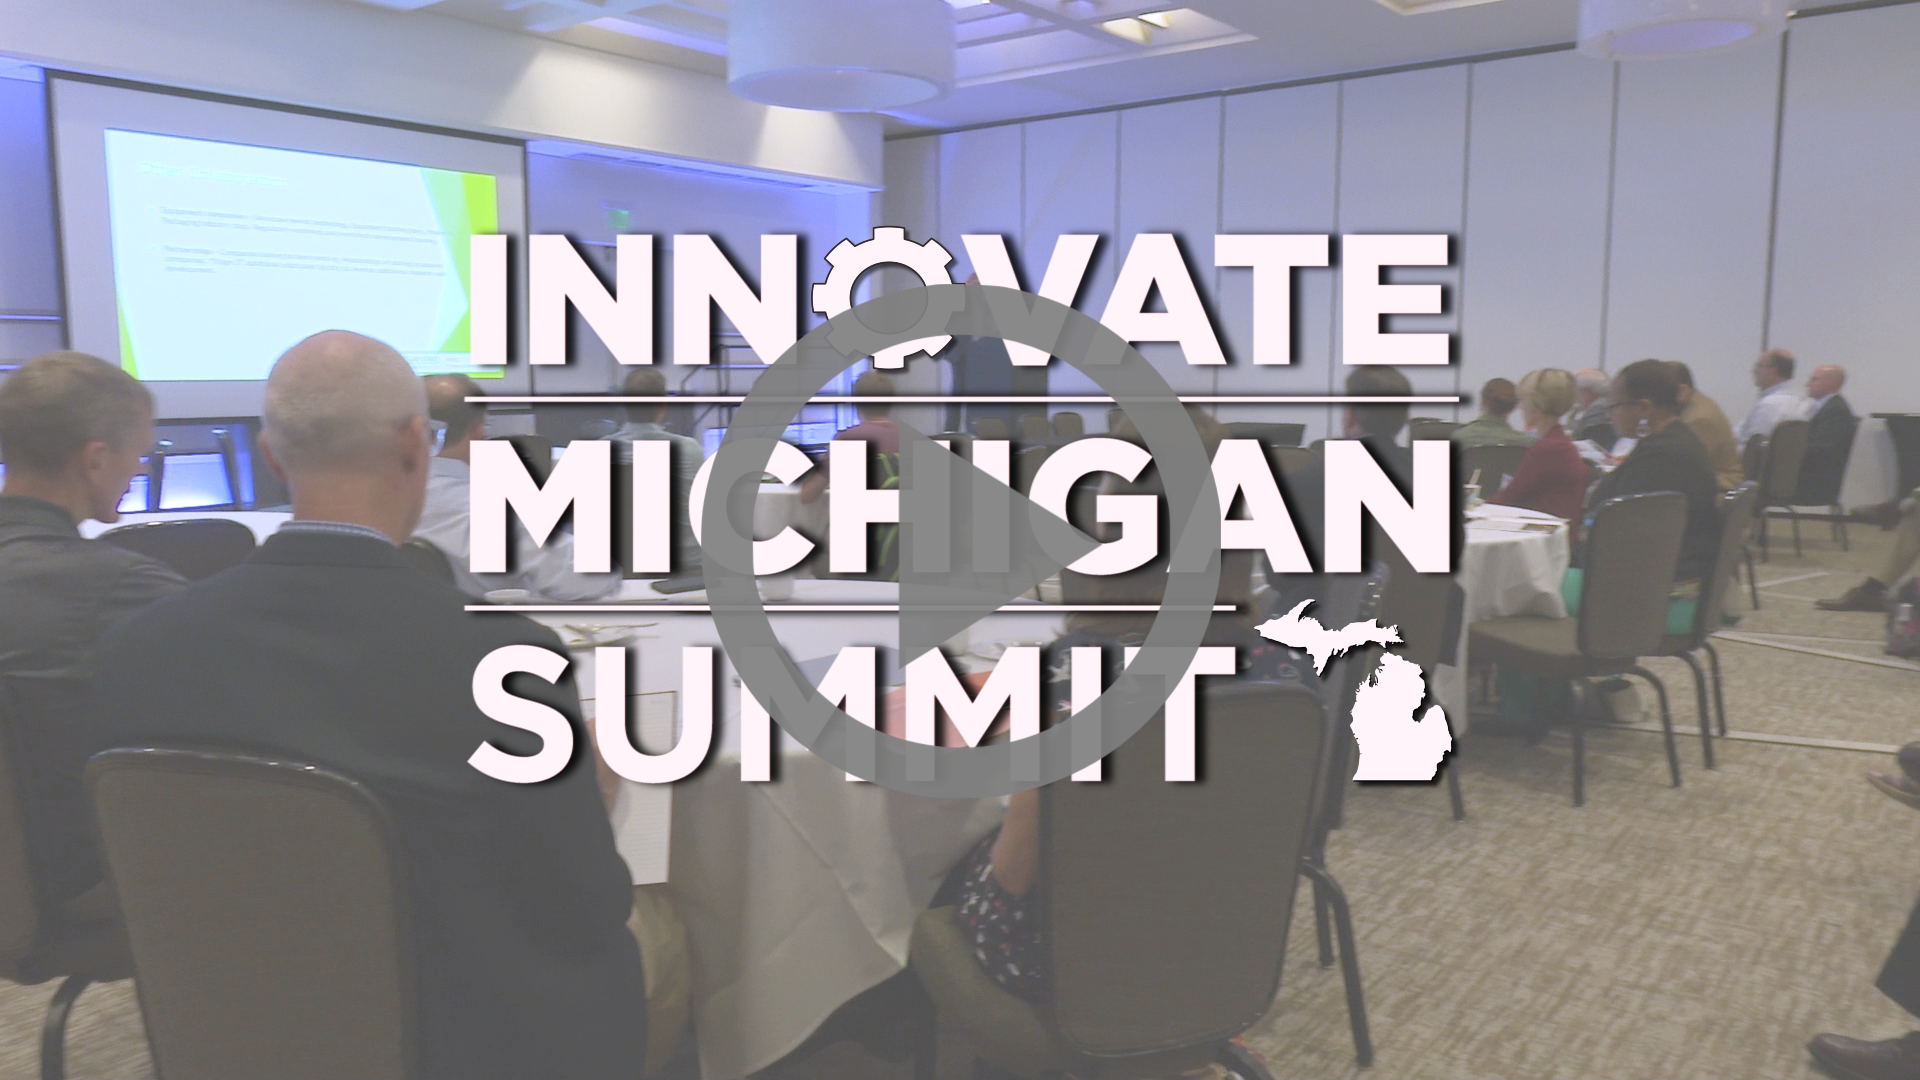 Innovate Michgian! 2019 Summit promotional video.